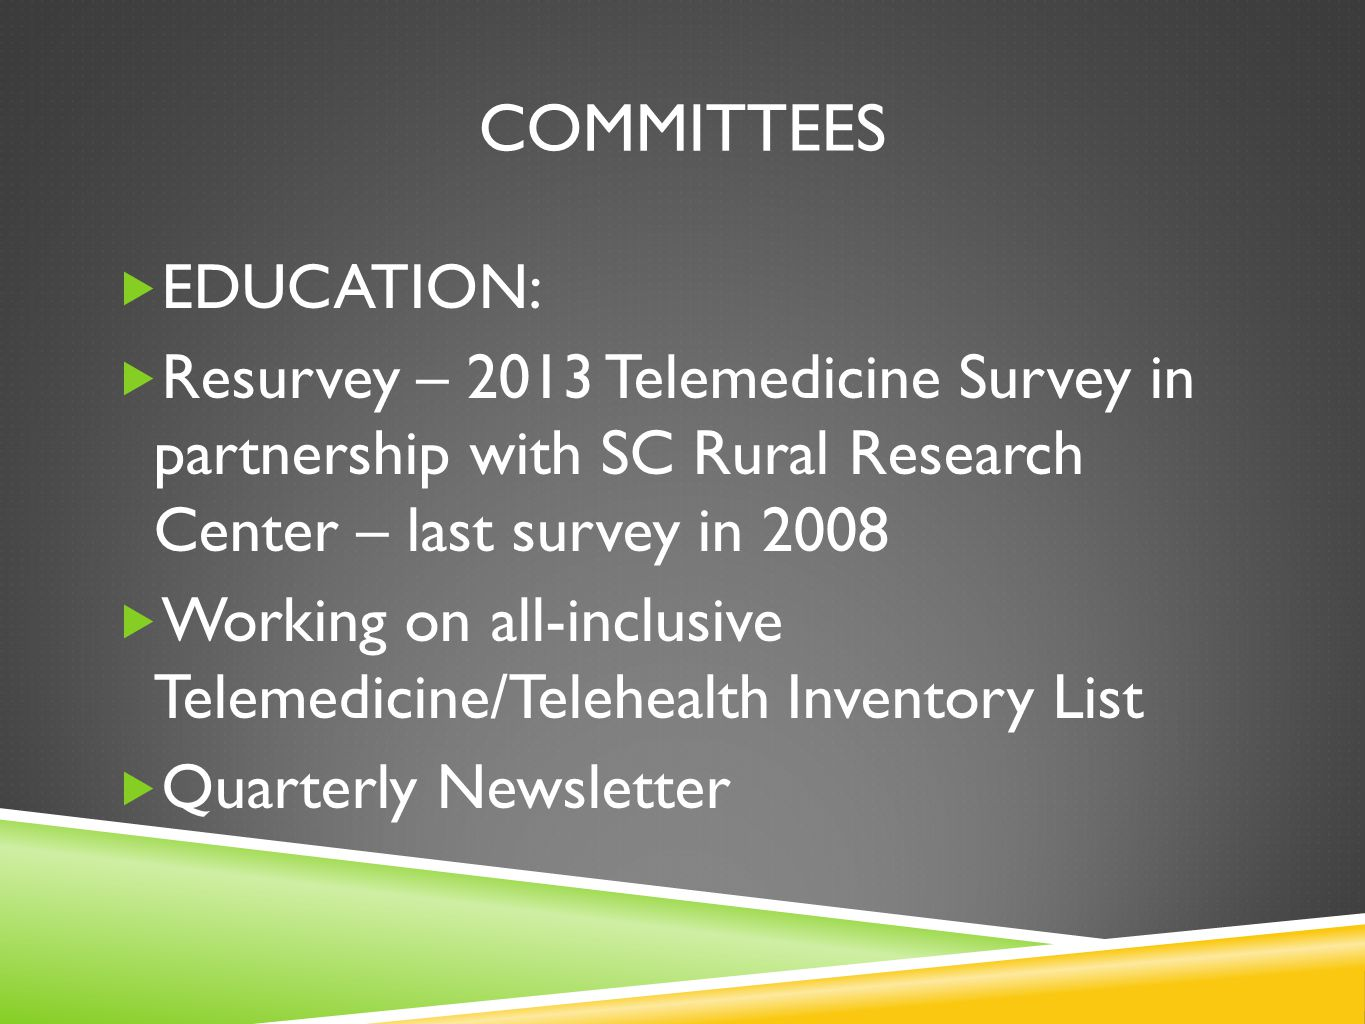 COMMITTEES EDUCATION: